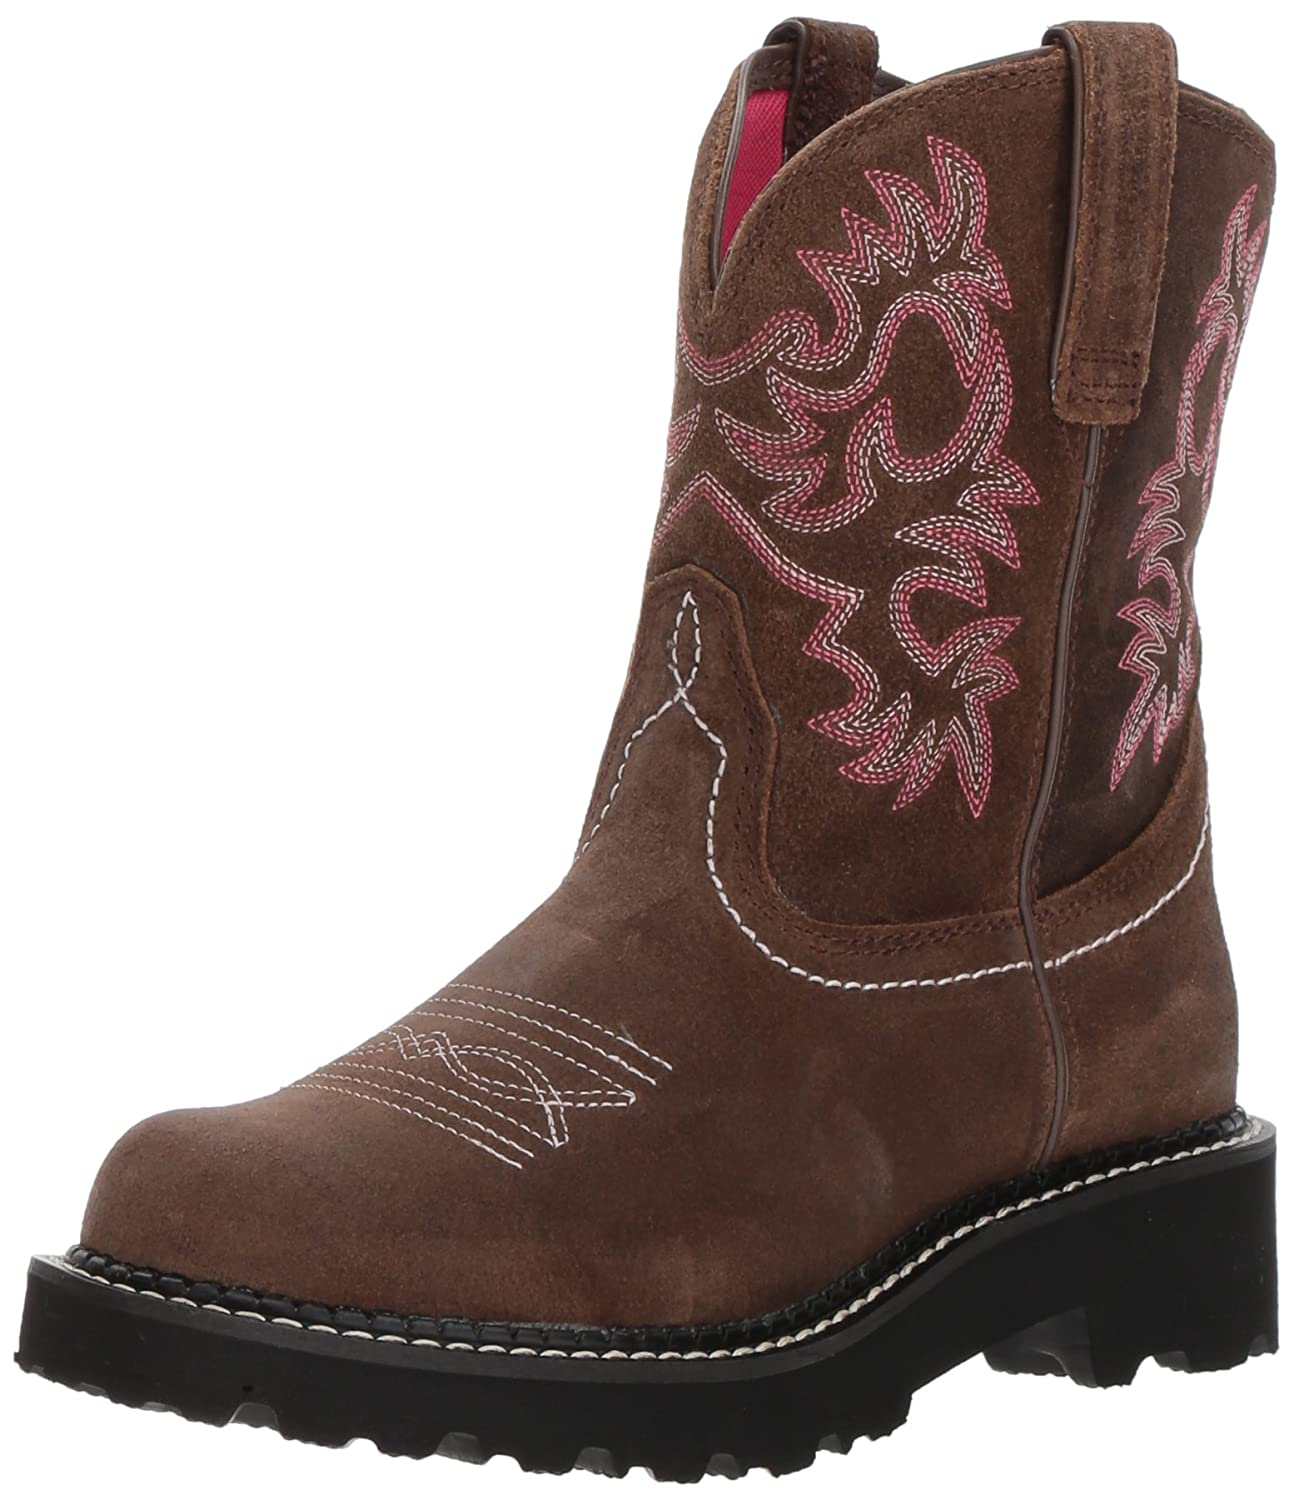 Dark Barley ARIAT WOMEN Women's Western Cowboy Boot